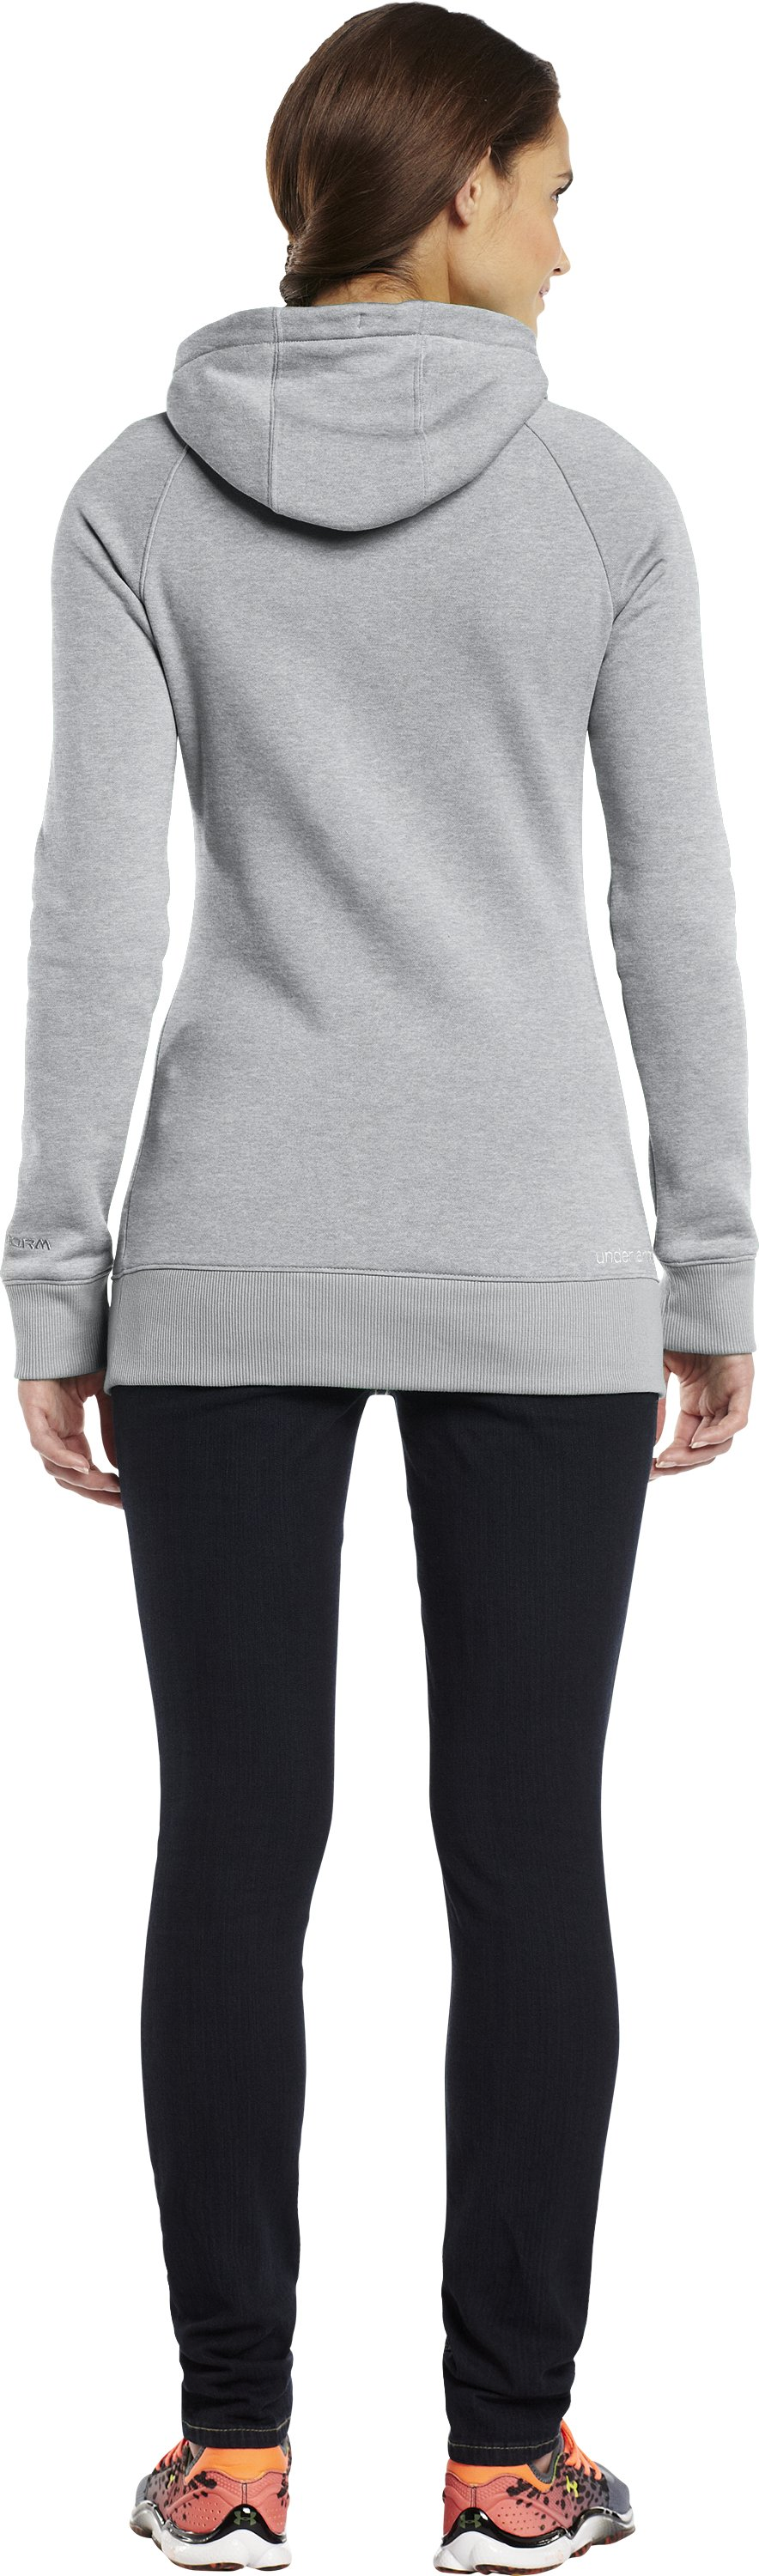 Women's UA MTN Charged Cotton® Storm Hoodie, True Gray Heather, Back